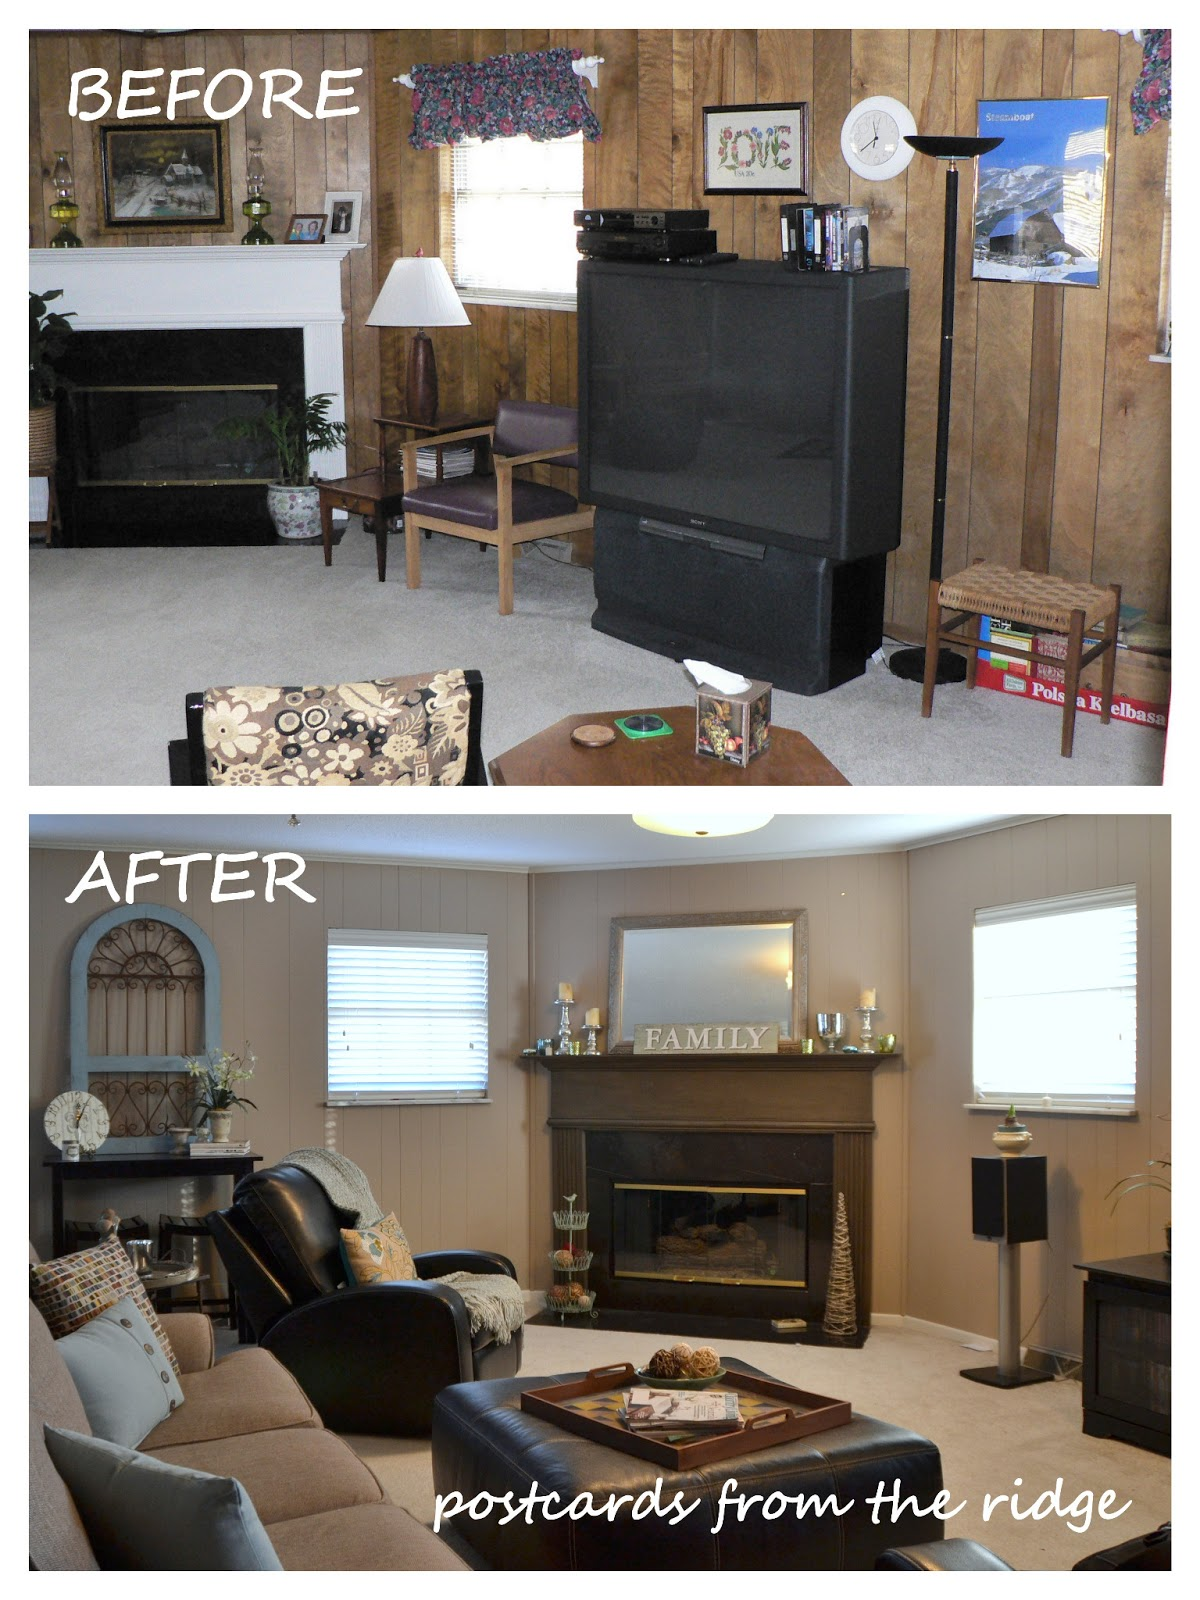 Painted Wood Paneling Before And After WB Designs - Painted Wood Paneling Before And After WB Designs